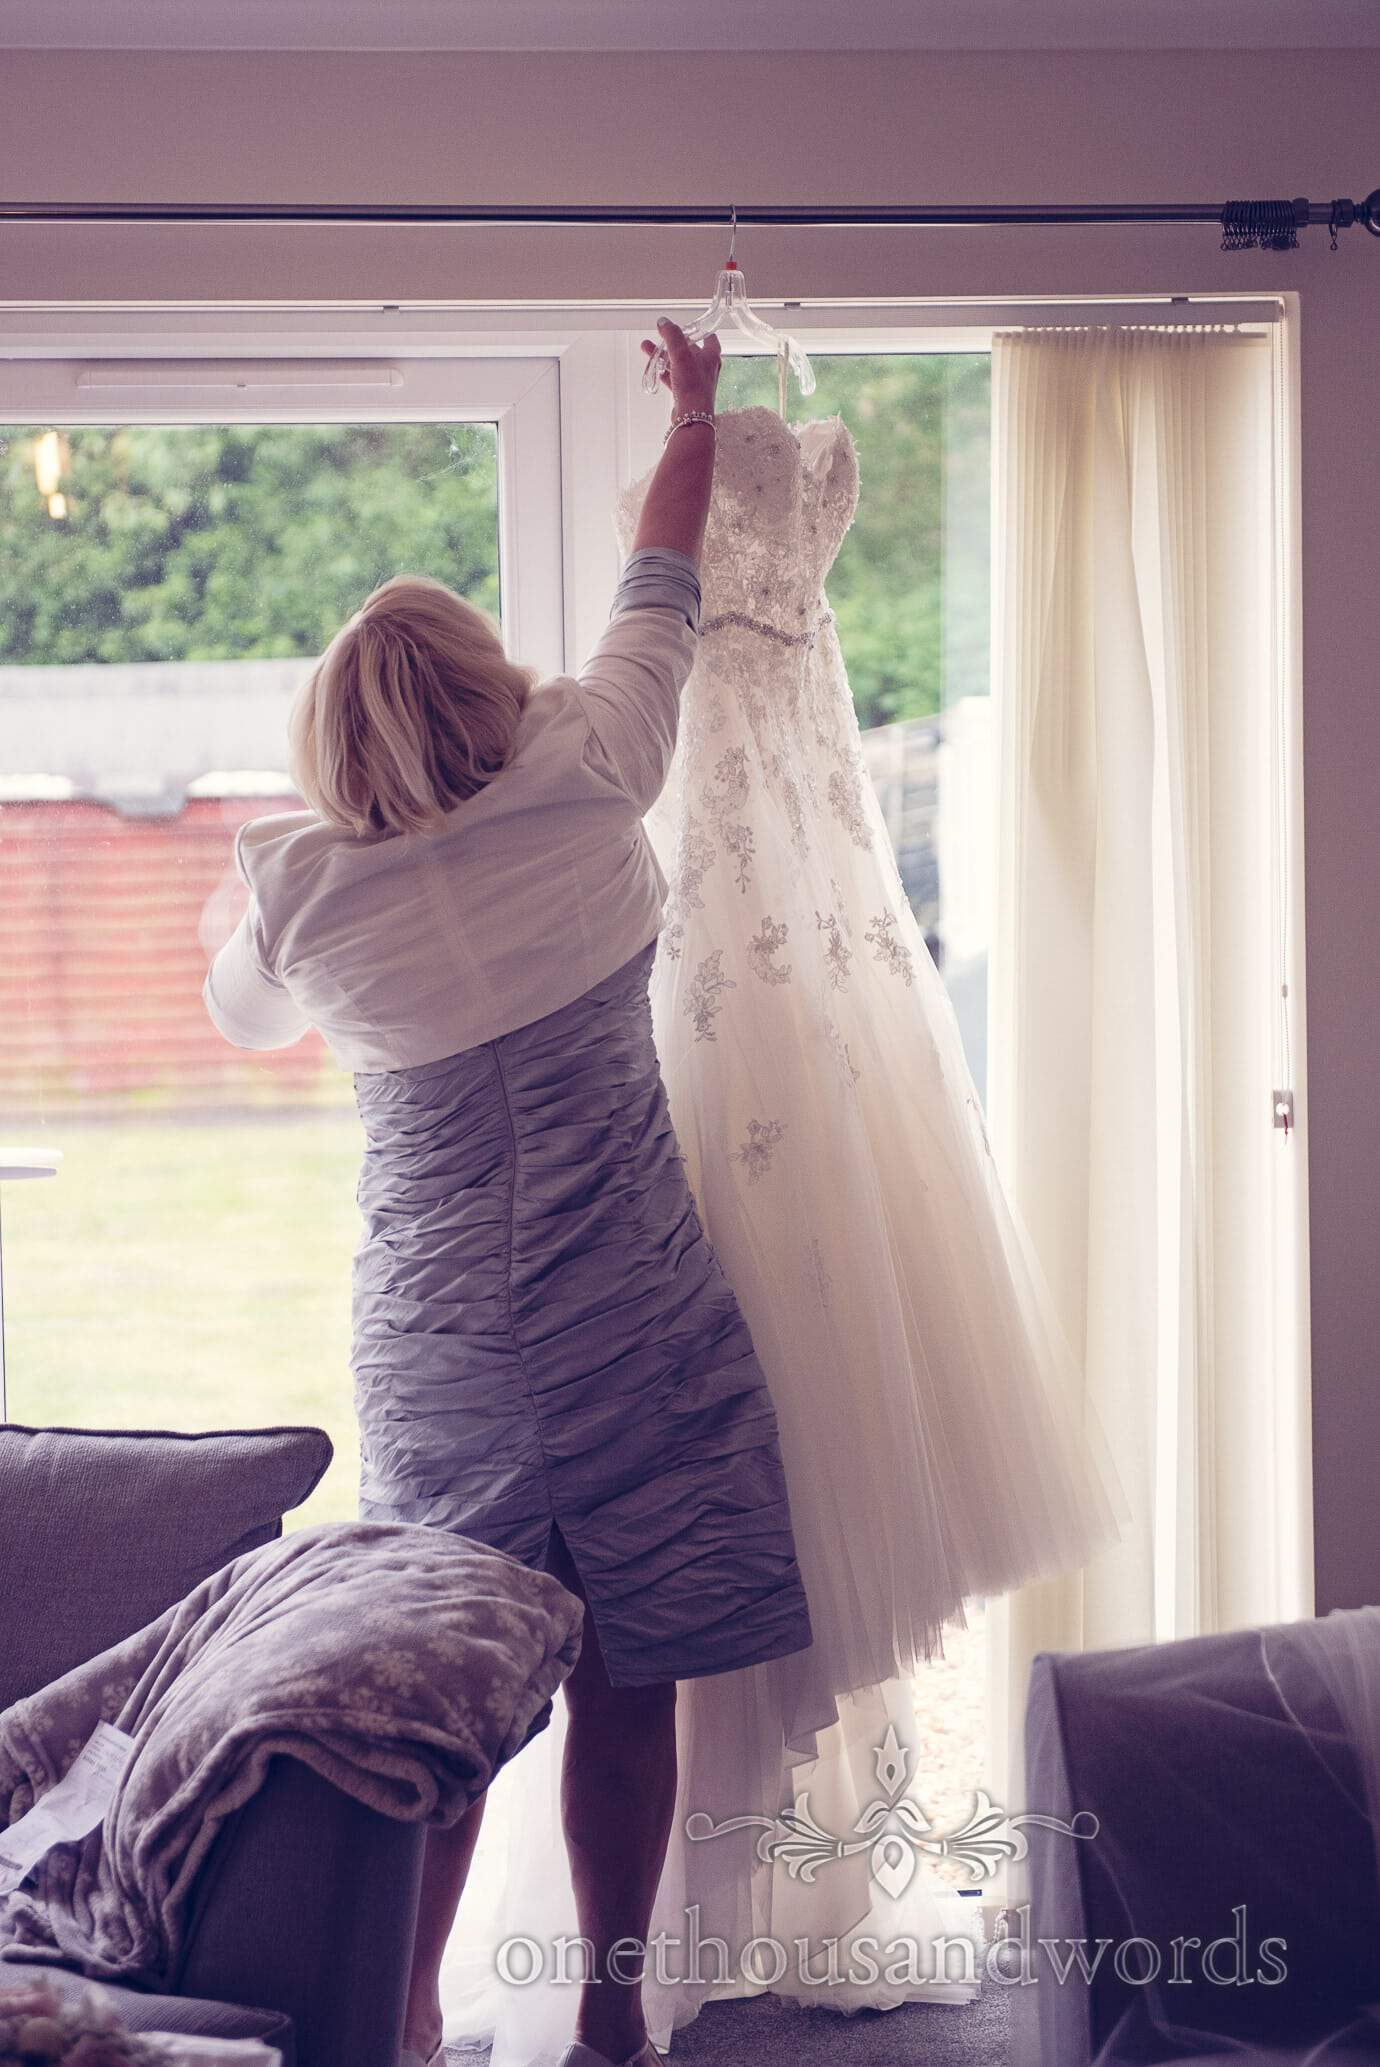 Mother of bride reaches for wedding dress in window